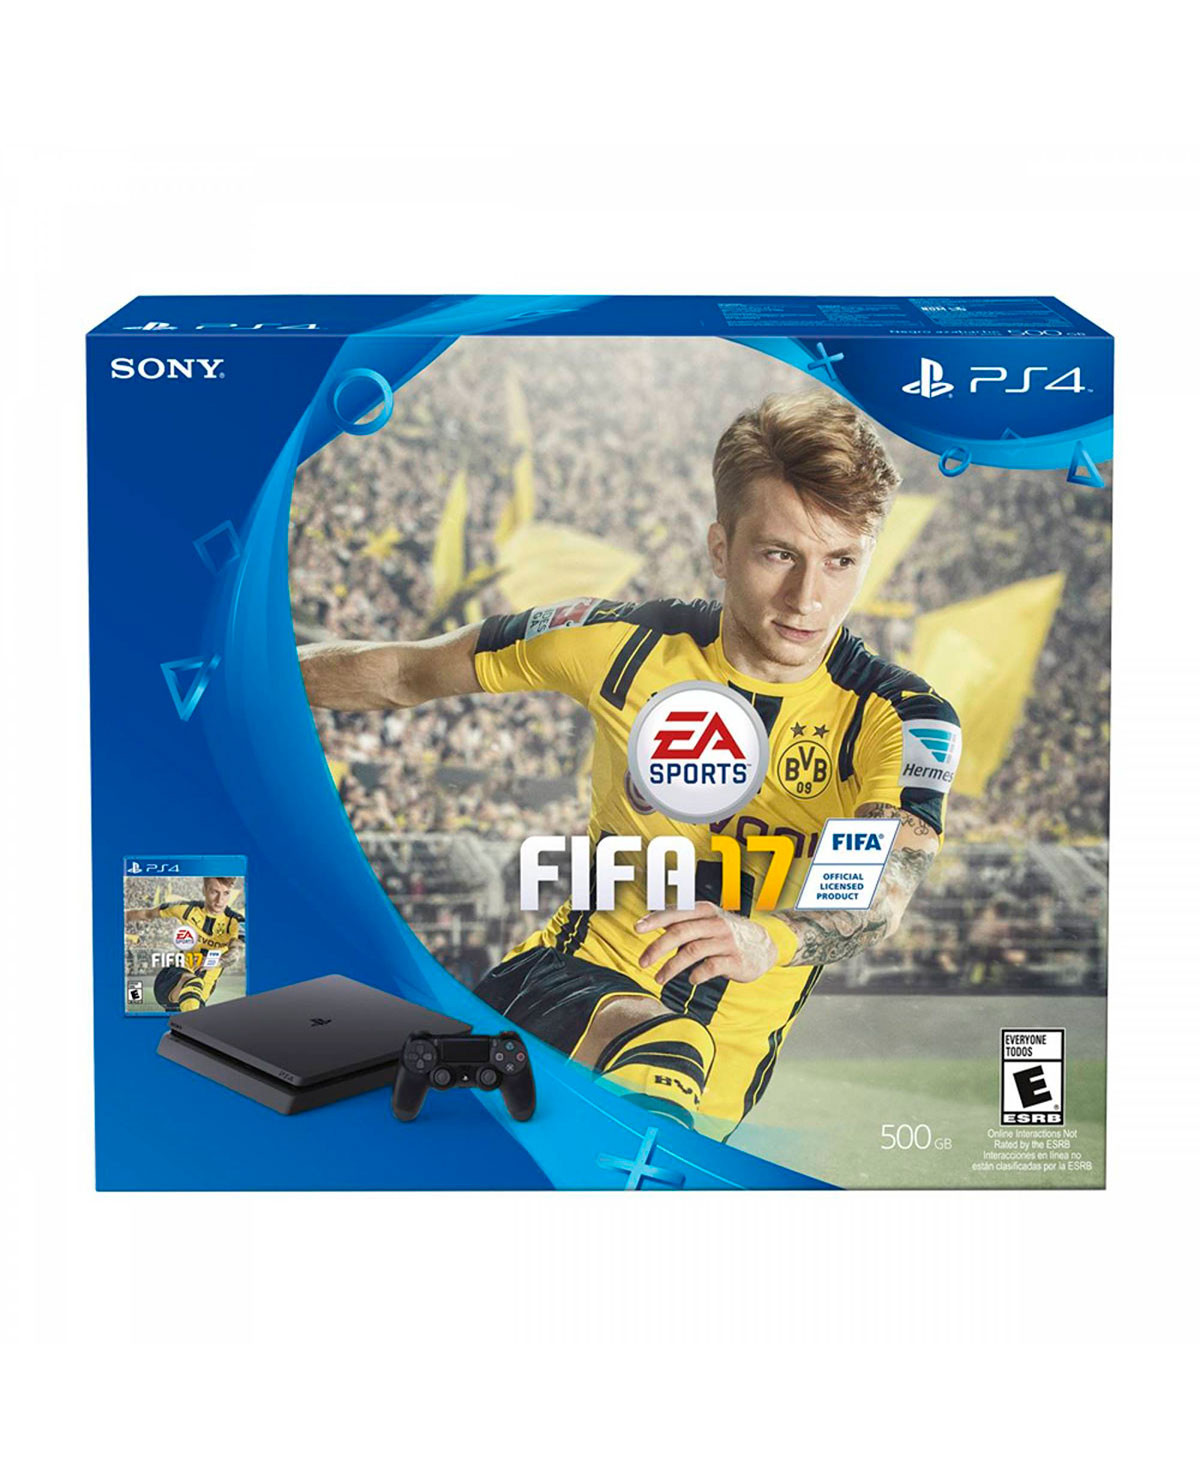 CONSOLA PLAYSTATION 4 SLIM NEGRO 500GB FIFA 17 BUNDLE